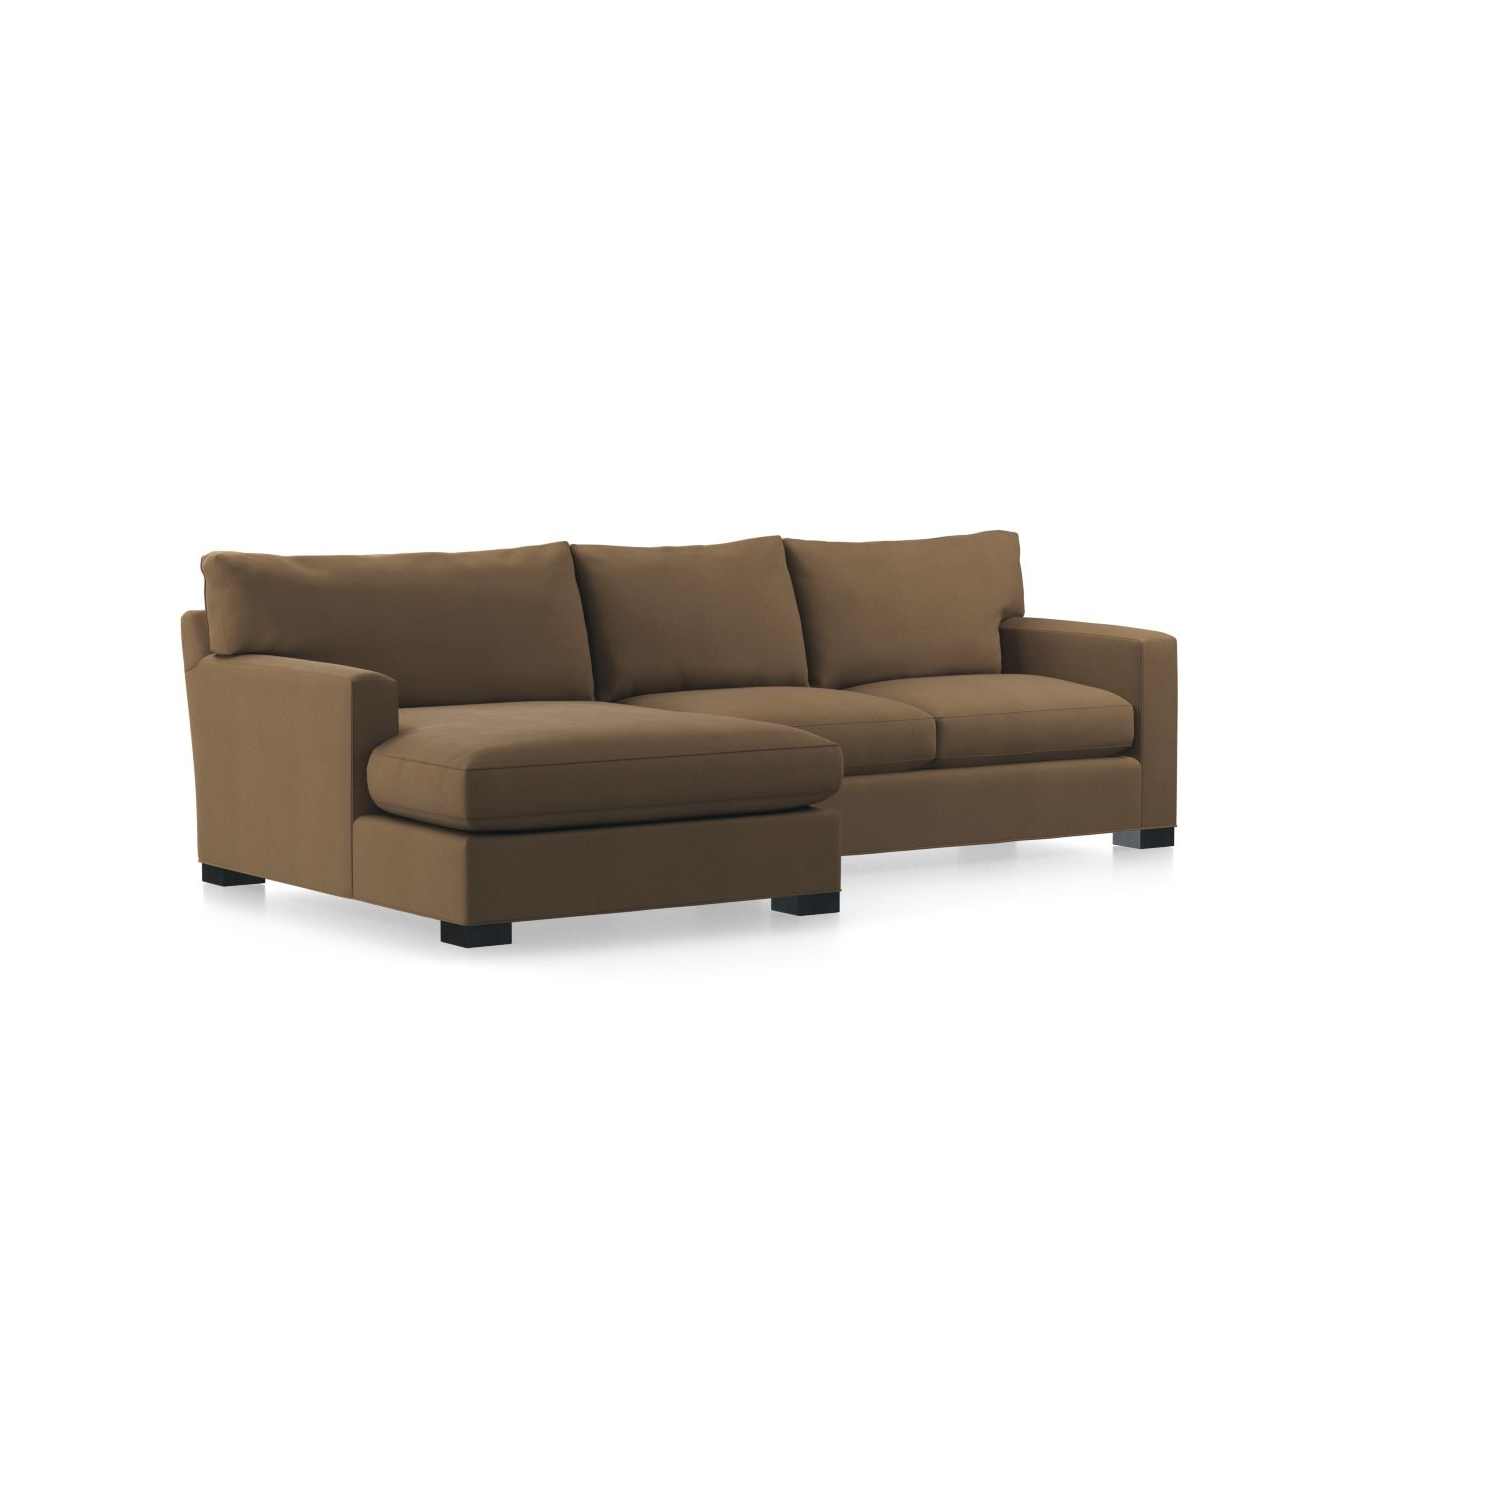 Axis Ii 2 Piece Right Arm Double Chaise Sectional Sofa In Axis With Most Up To Date Angled Chaise Sofas (View 10 of 20)